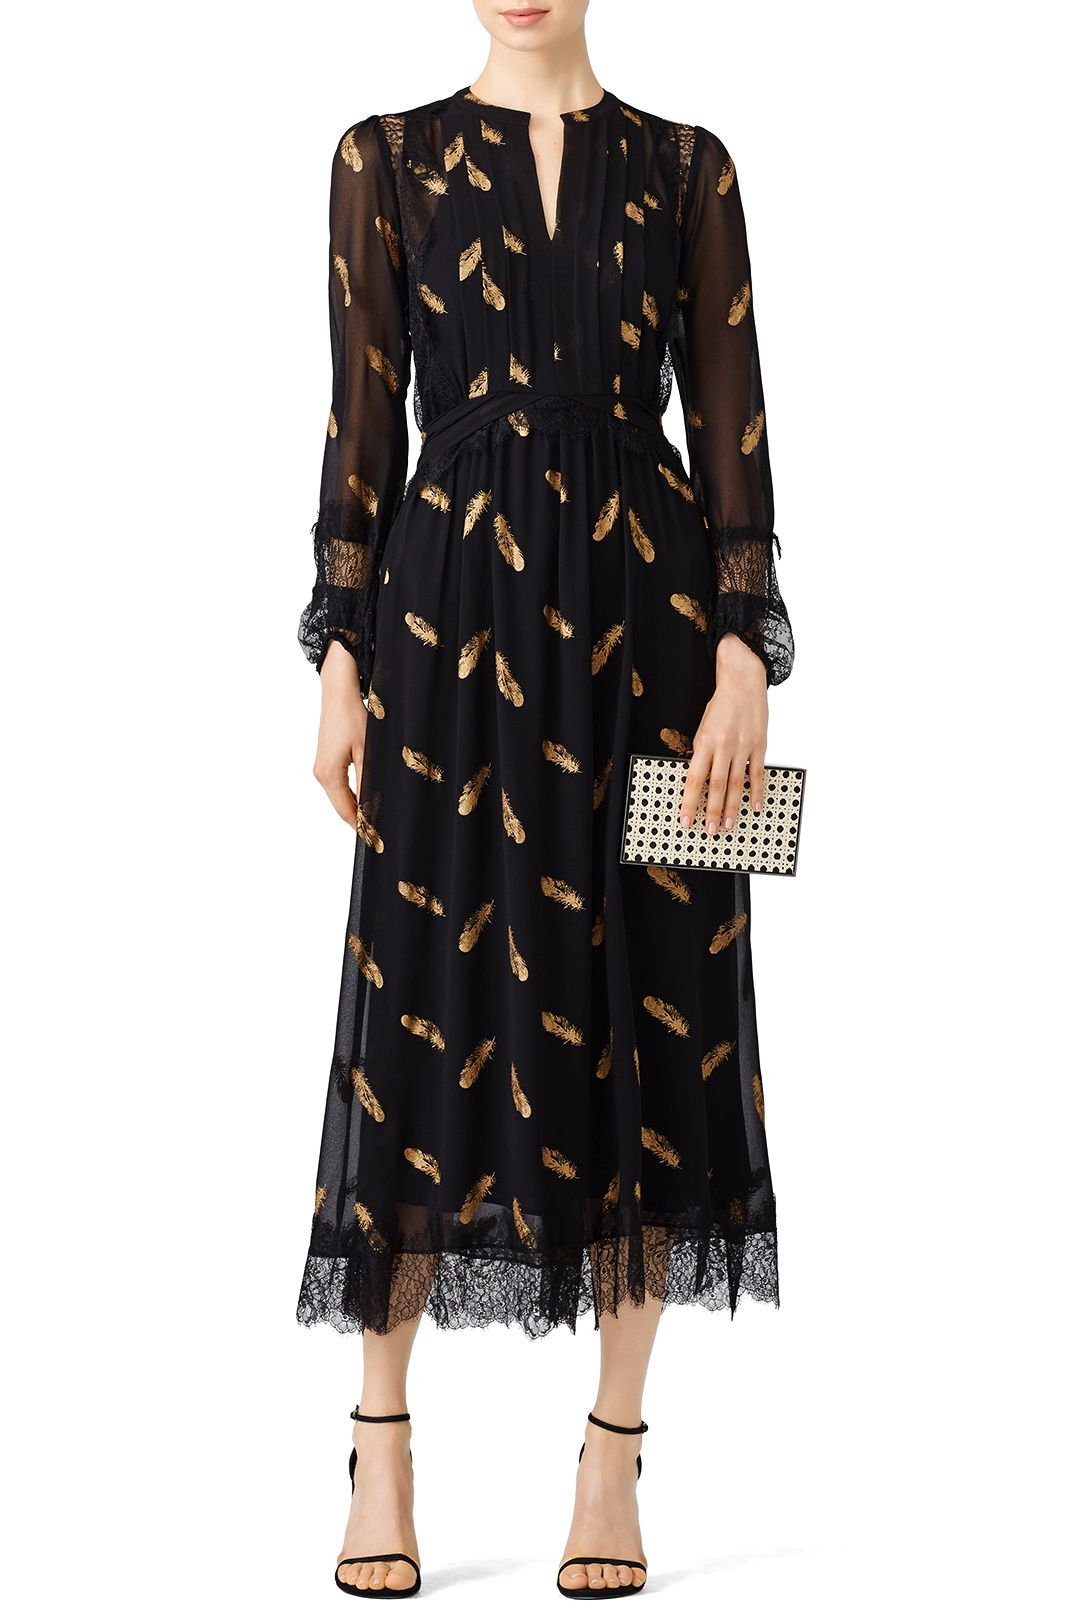 e81ec8bd22 Rent Gold Leaf Printed Maxi by The Kooples for $70 - $85 only at Rent the  Runway.